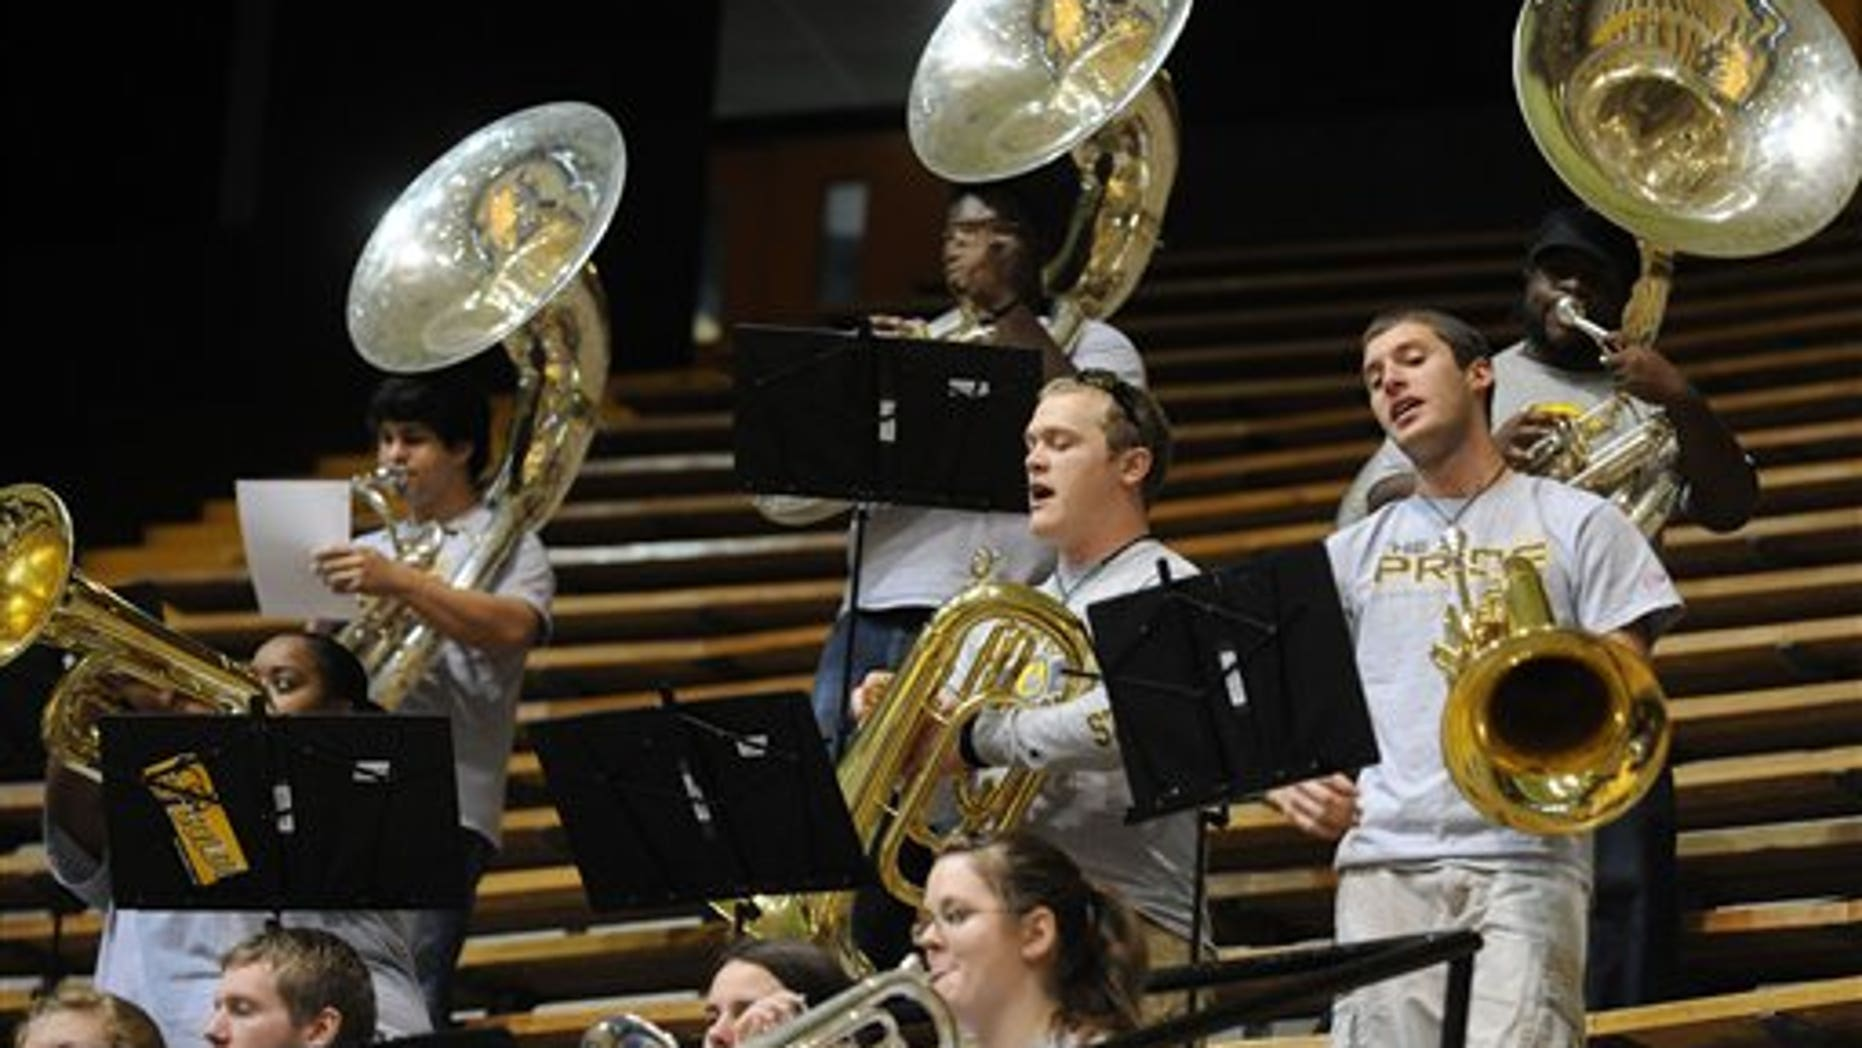 Jan. 8: Members of the Southern Miss Pep Band perform during an NCAA college basketball game against Houston at the University of Southern Mississippi in Hattiesburg, Miss.